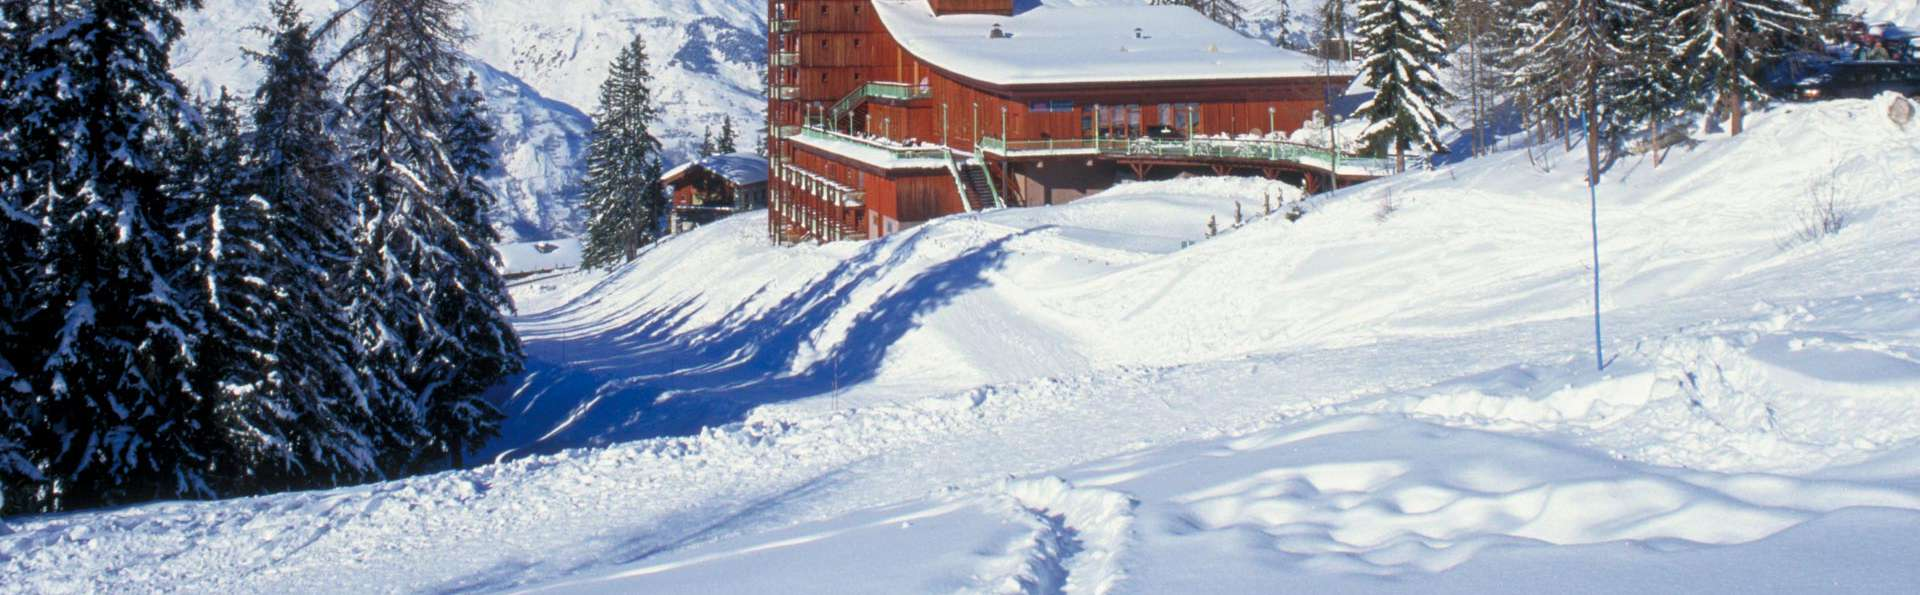 Mercure Les Arcs 1800 - EDIT_NEW_FRONT_01.jpg